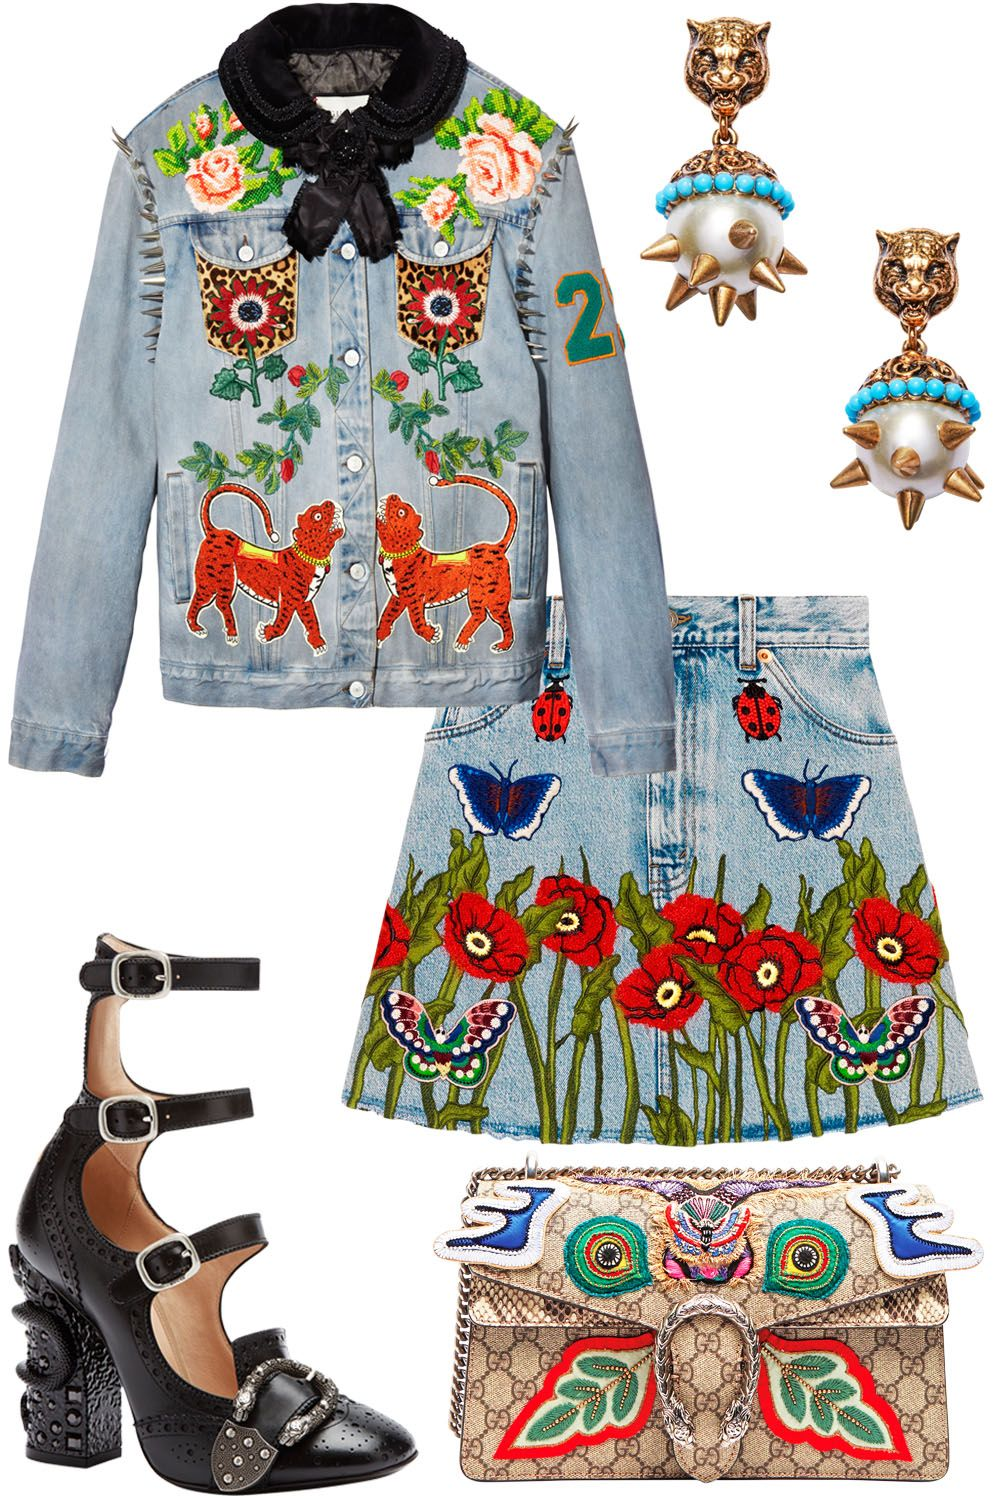 """<p><em data-redactor-tag=""""em"""" data-verified=""""redactor"""">Gucci jacket, $7,700, and<em data-redactor-tag=""""em"""">shoes, $1,790</em><span class=""""redactor-invisible-space"""" data-verified=""""redactor"""" data-redactor-tag=""""span"""" data-redactor-class=""""redactor-invisible-space"""">,</span><a href=""""http://www.gucci.com/"""" target=""""_blank"""">gucci.com</a>;Gucciearrings, $450,bag,$3,800, and skirt, $1,890,<a href=""""http://www.shopbazaar.com/"""" target=""""_blank"""">shopBAZAAR.com</a>.</em></p>"""